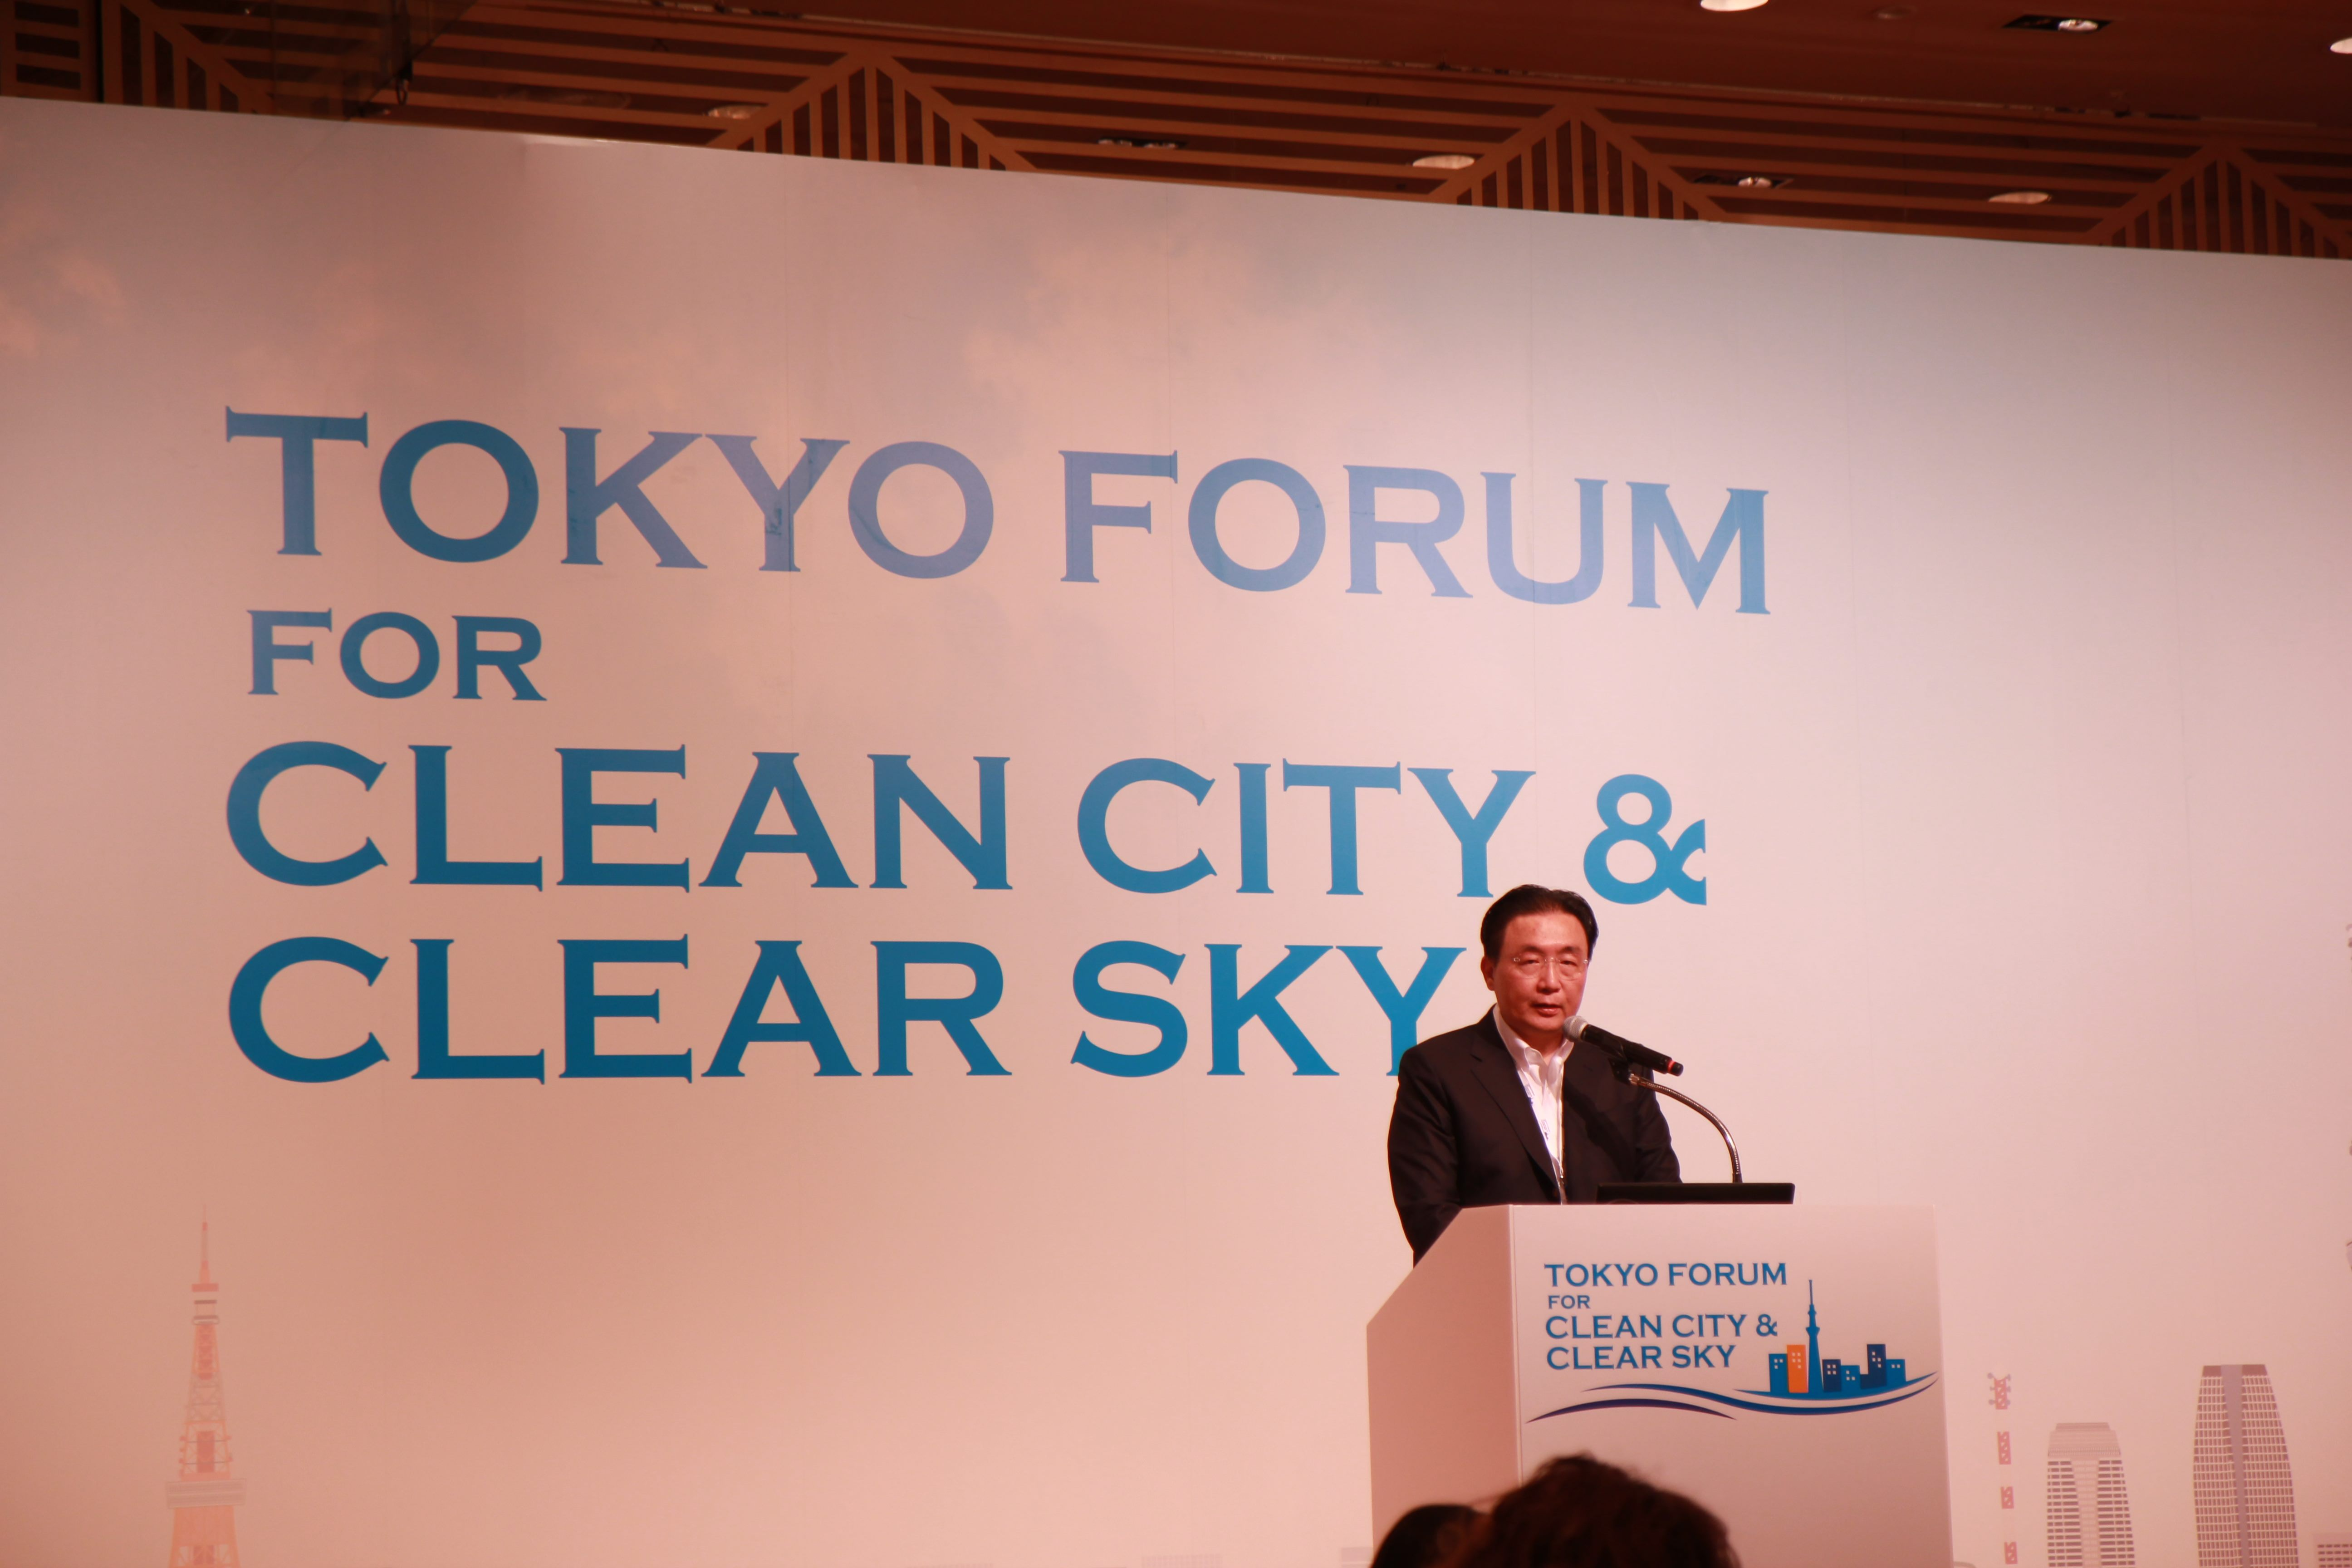 Tokyo Forum for Clean City & Clear Sky